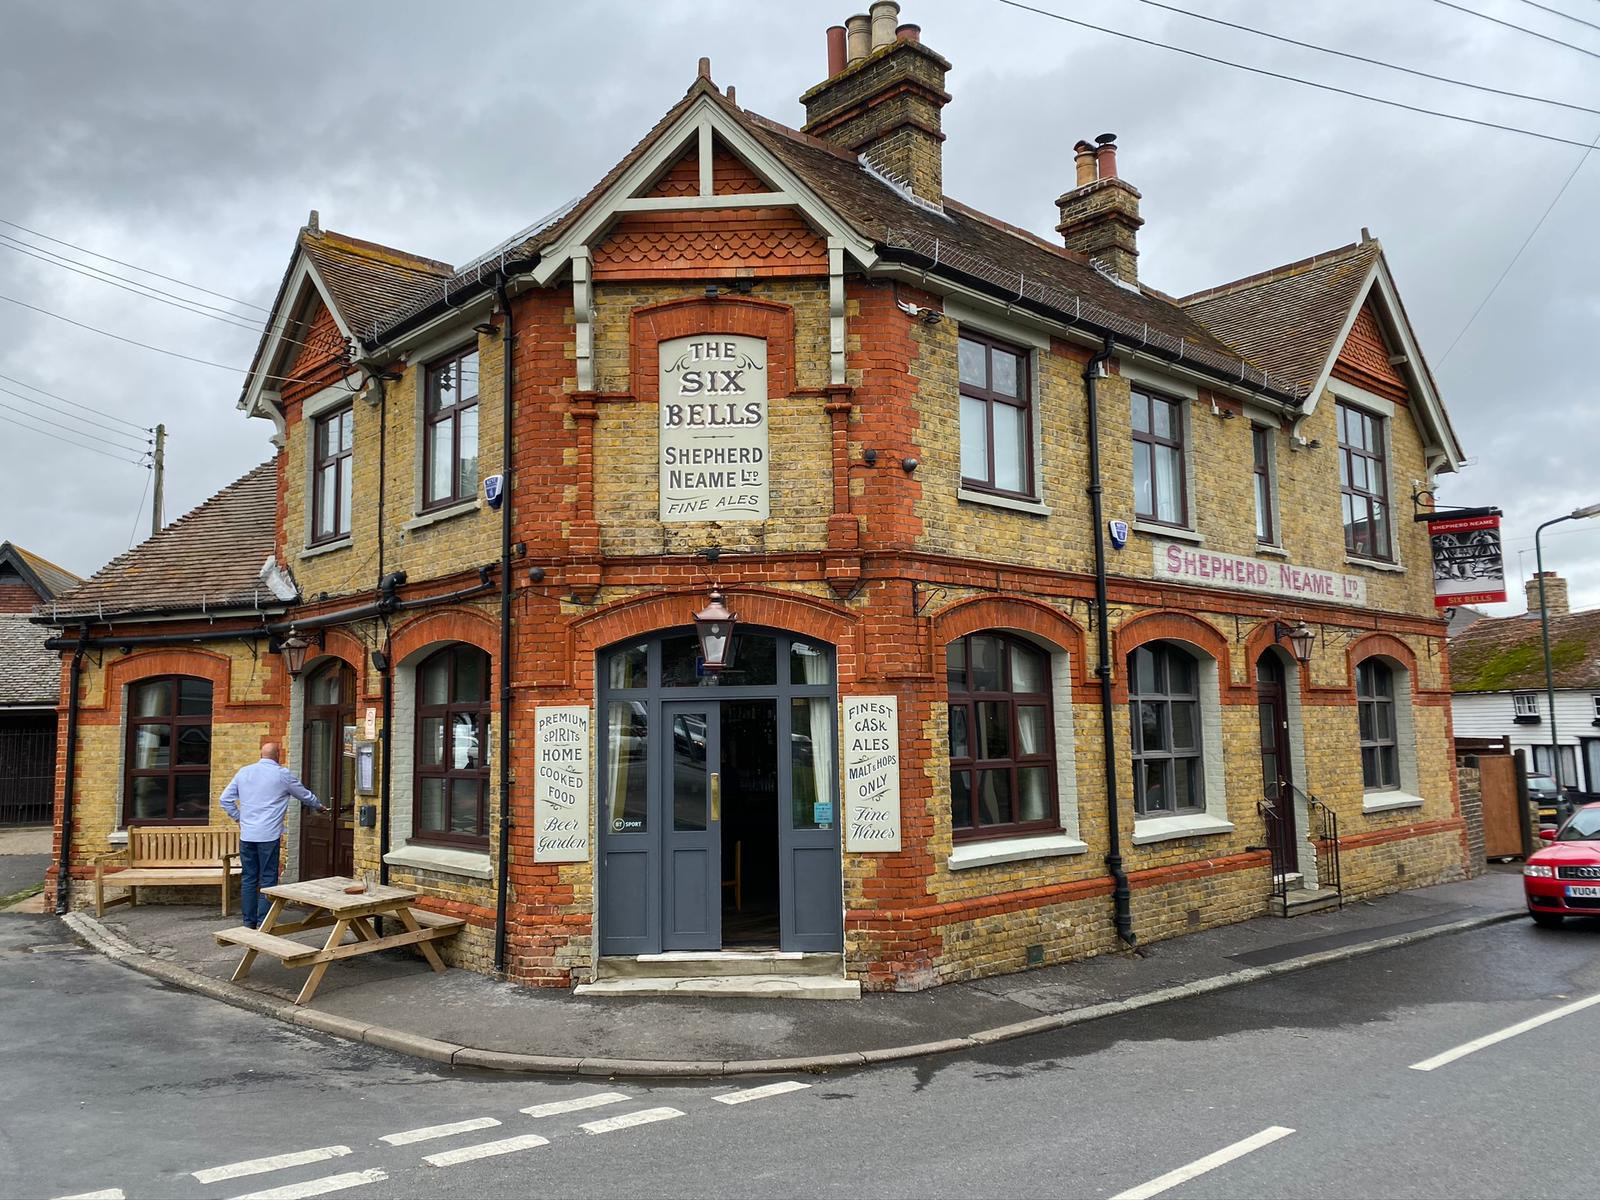 The Six Bells Cliffe